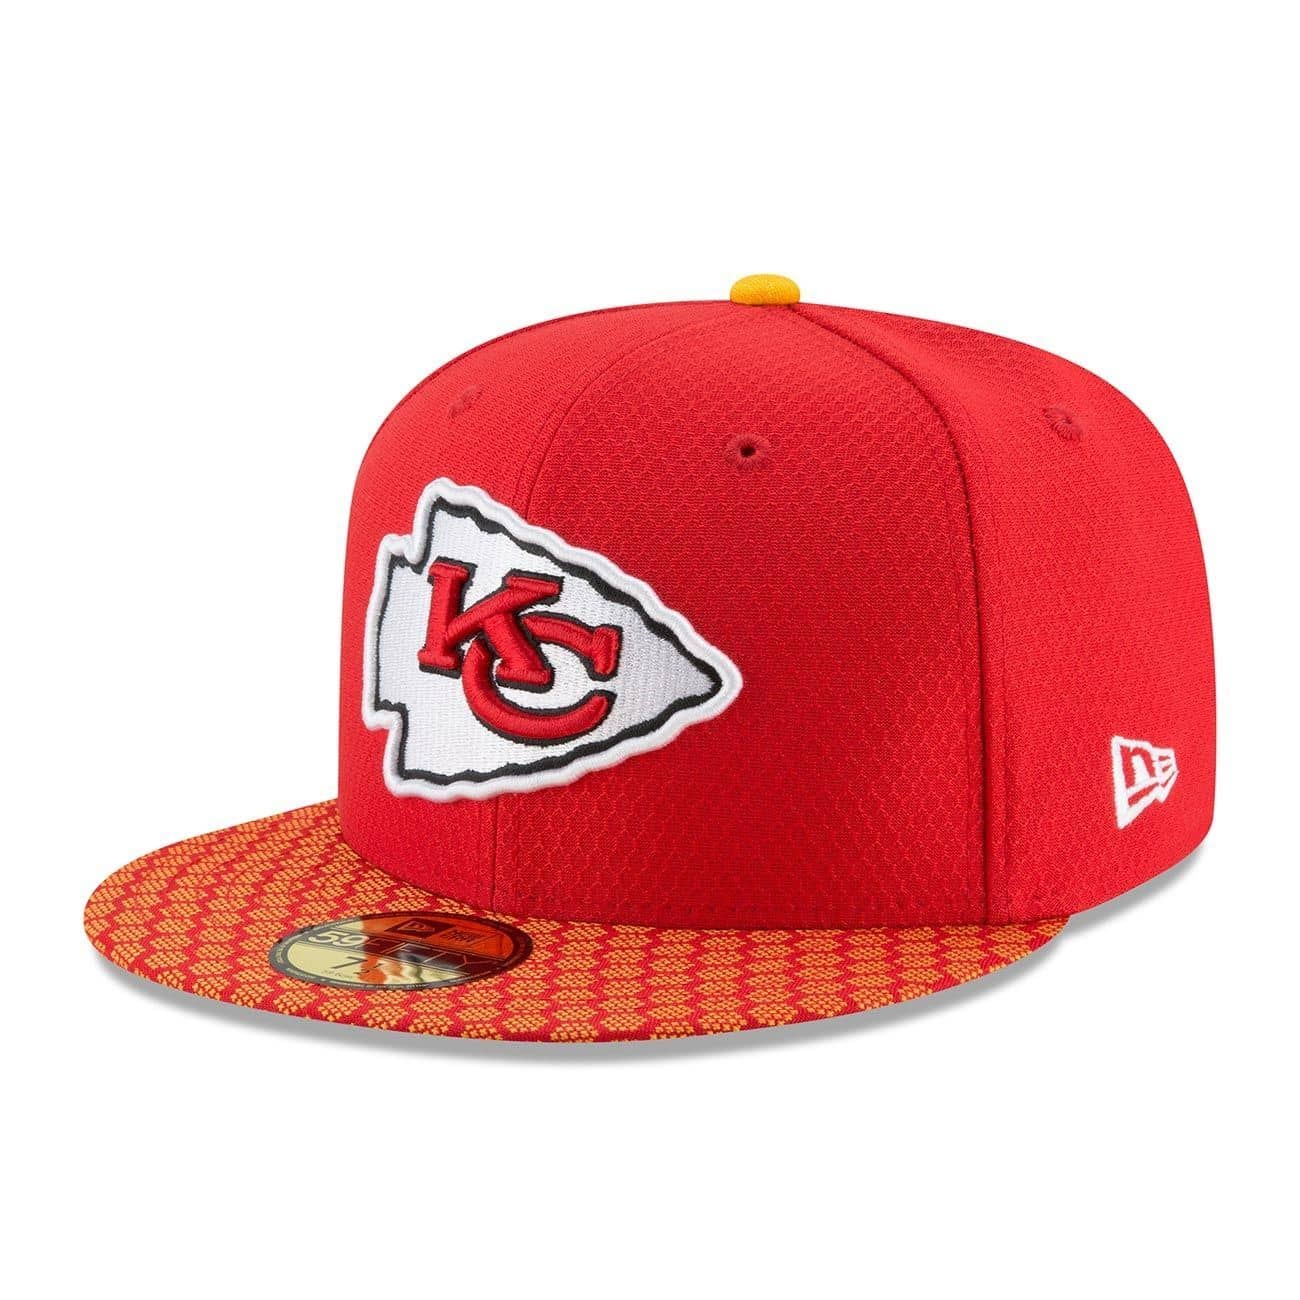 on sale a3620 7cb73 New Era Kansas City Chiefs 2017 Sideline ON-FIELD NFL 59FIFTY Fitted Cap    TAASS.com Fan Shop